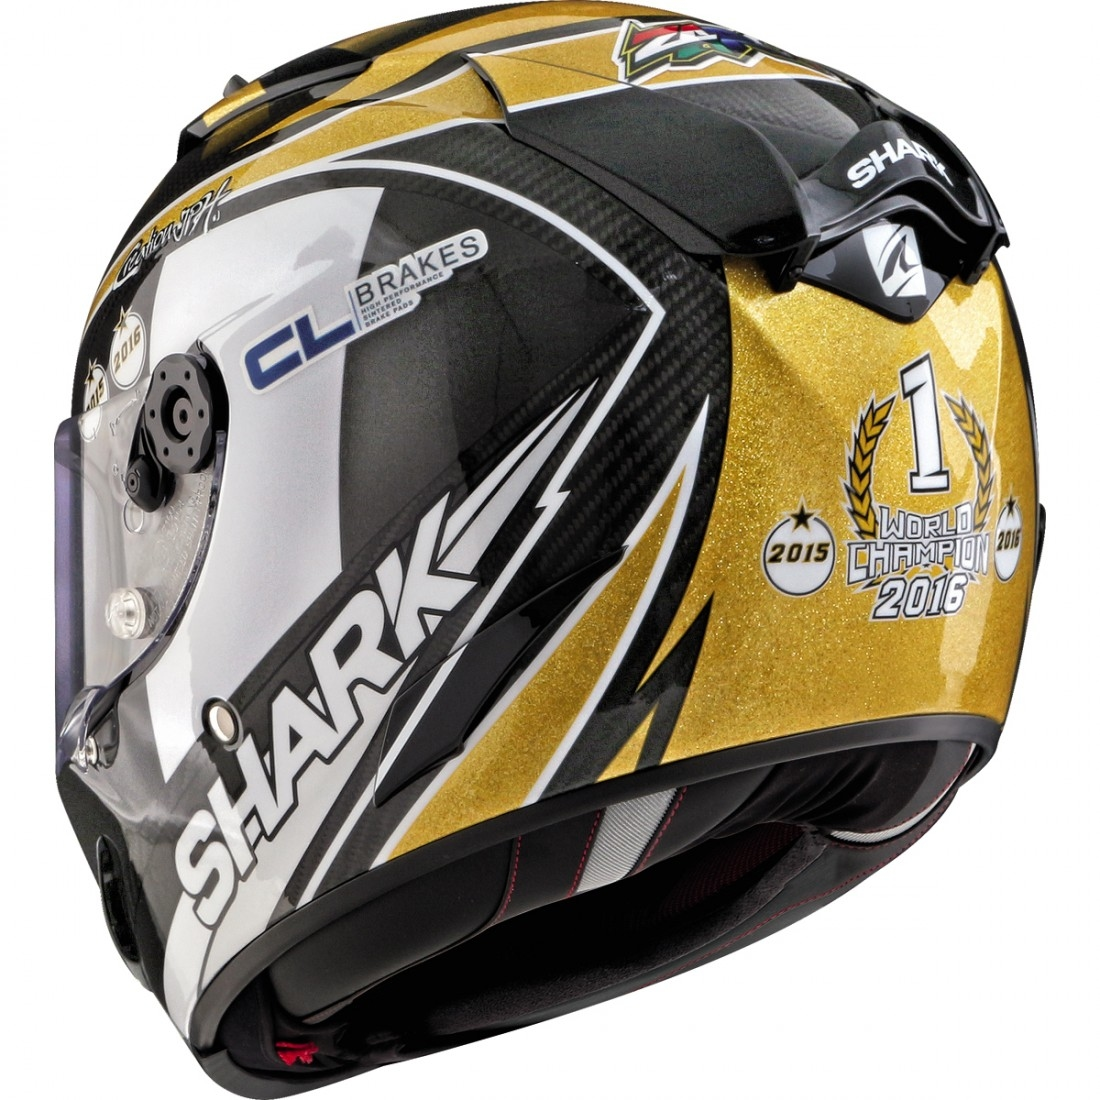 cbe2be48e0c38 SHARK Race-R Pro Carbon Replica Zarco World Champion 2016 Limited Edition  Carbon   Gold